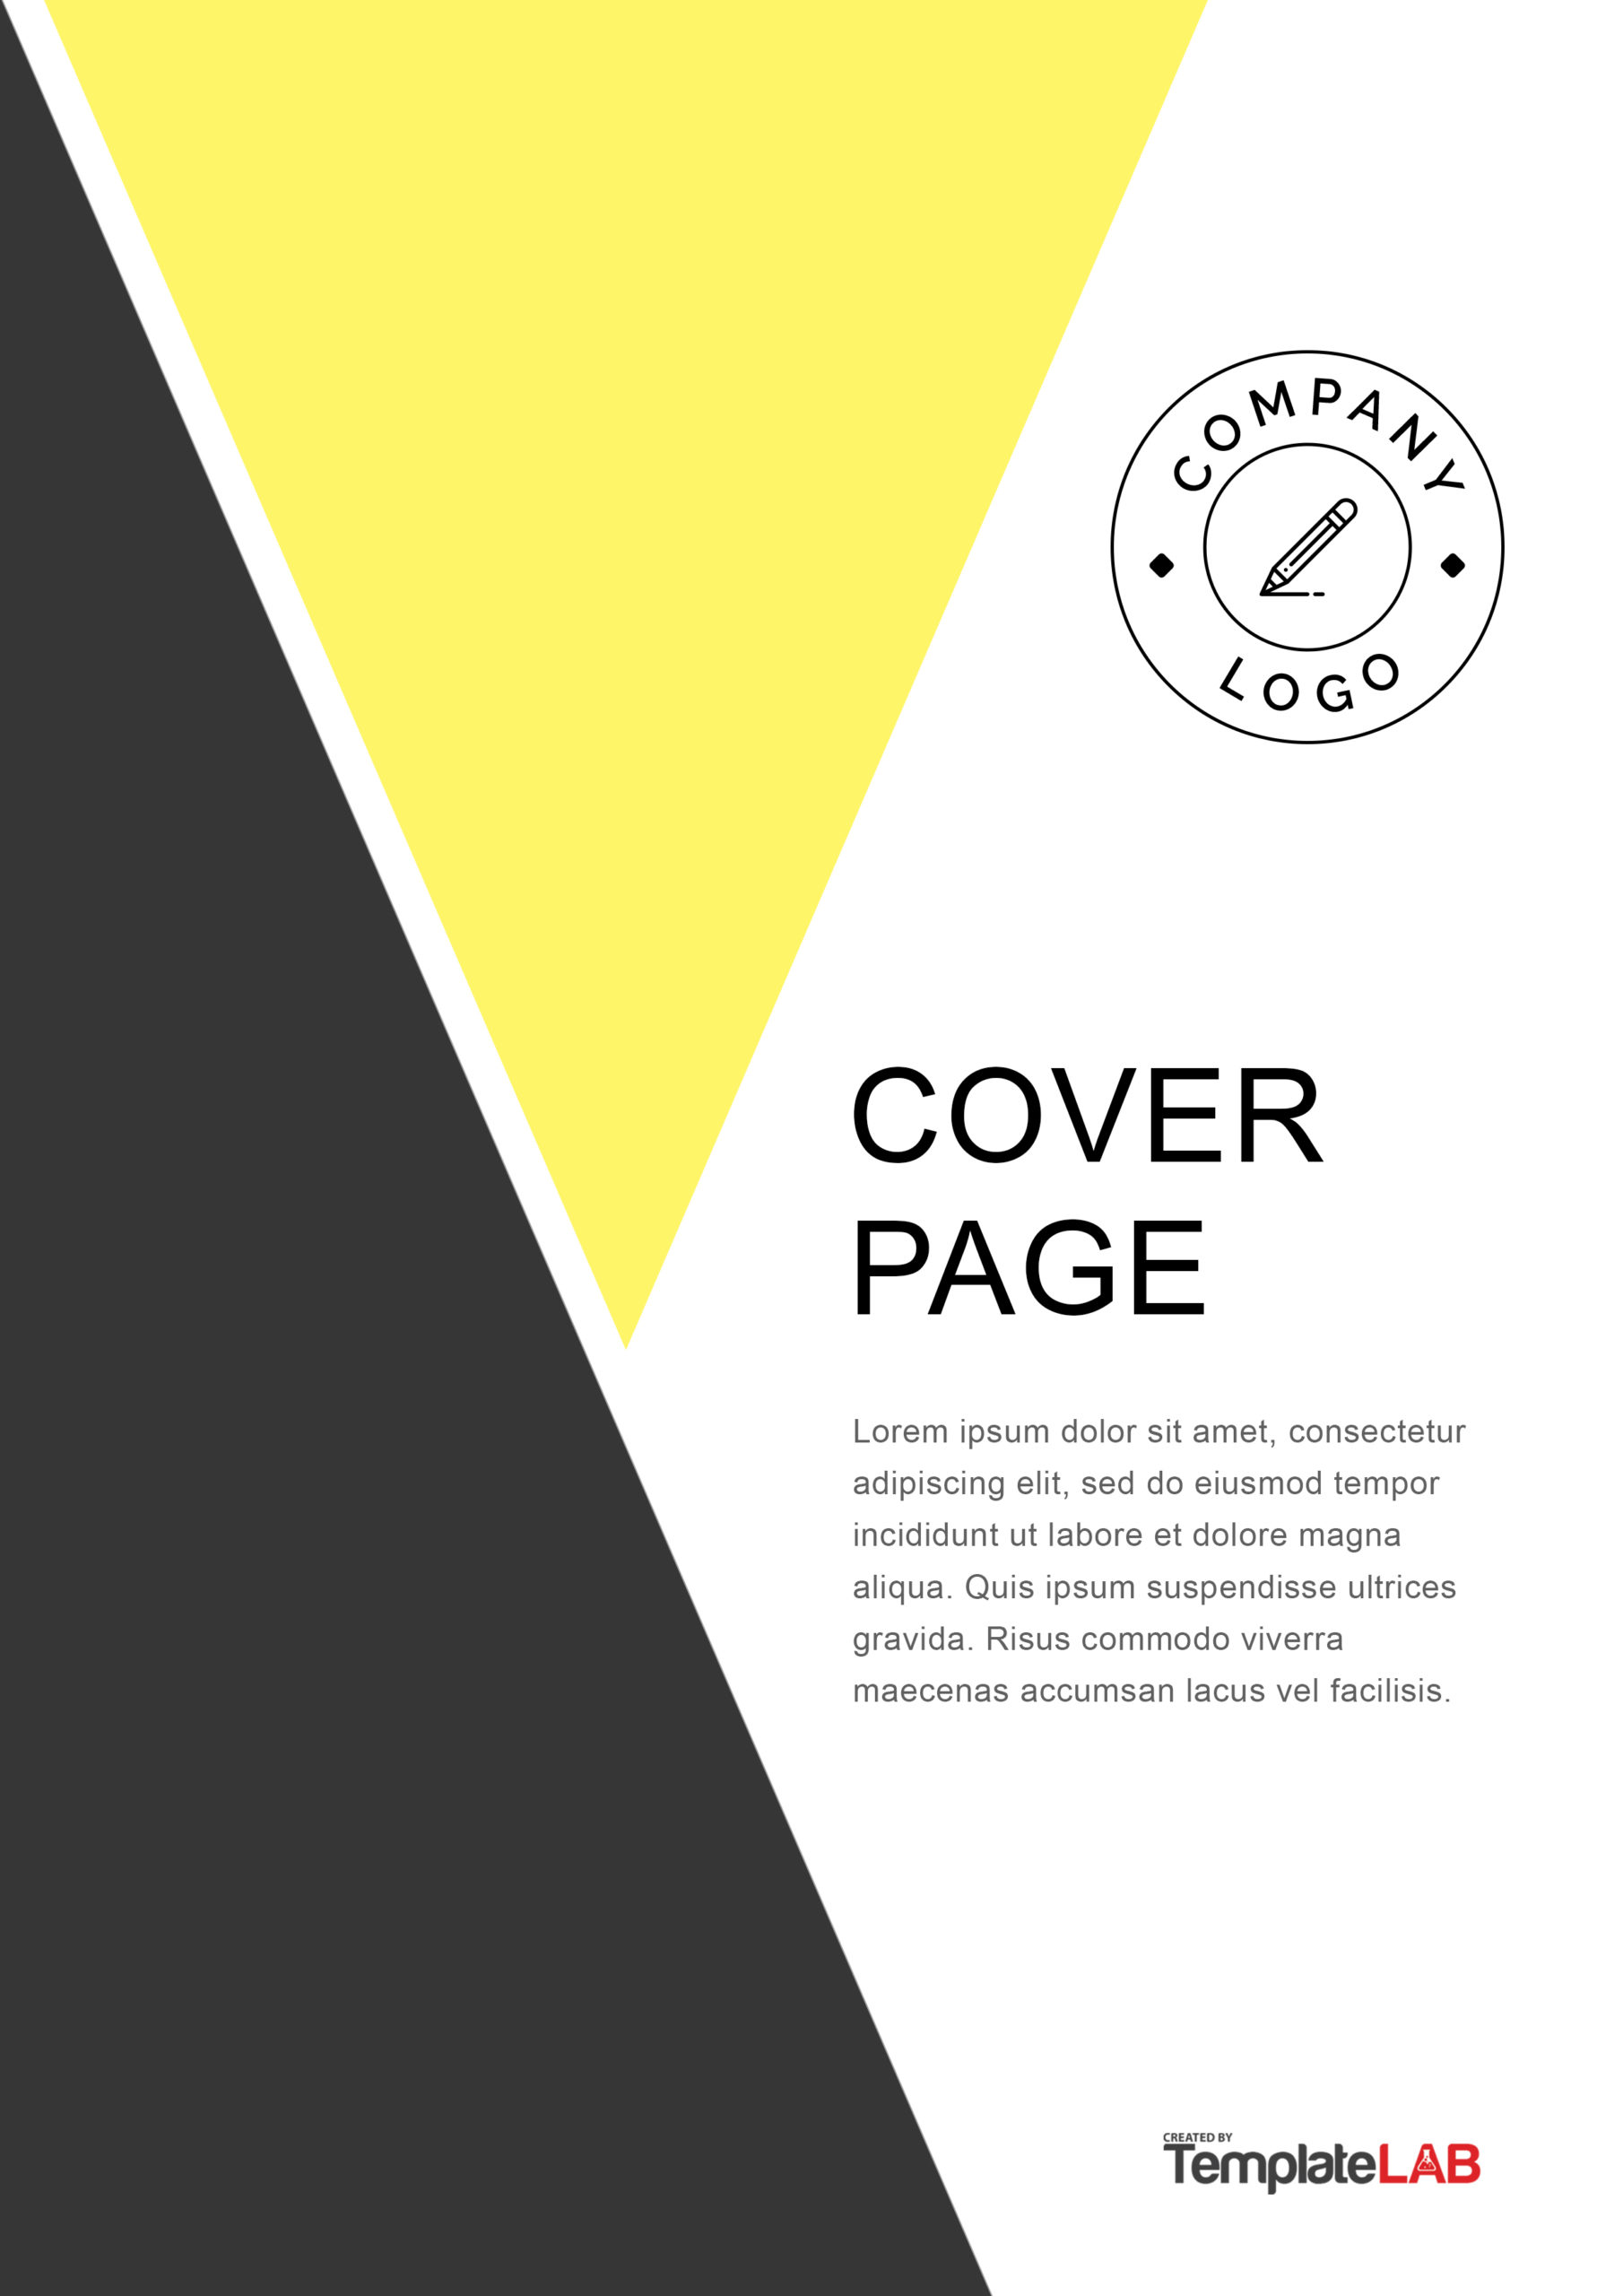 Free Title Page Template - TemplateLab.com